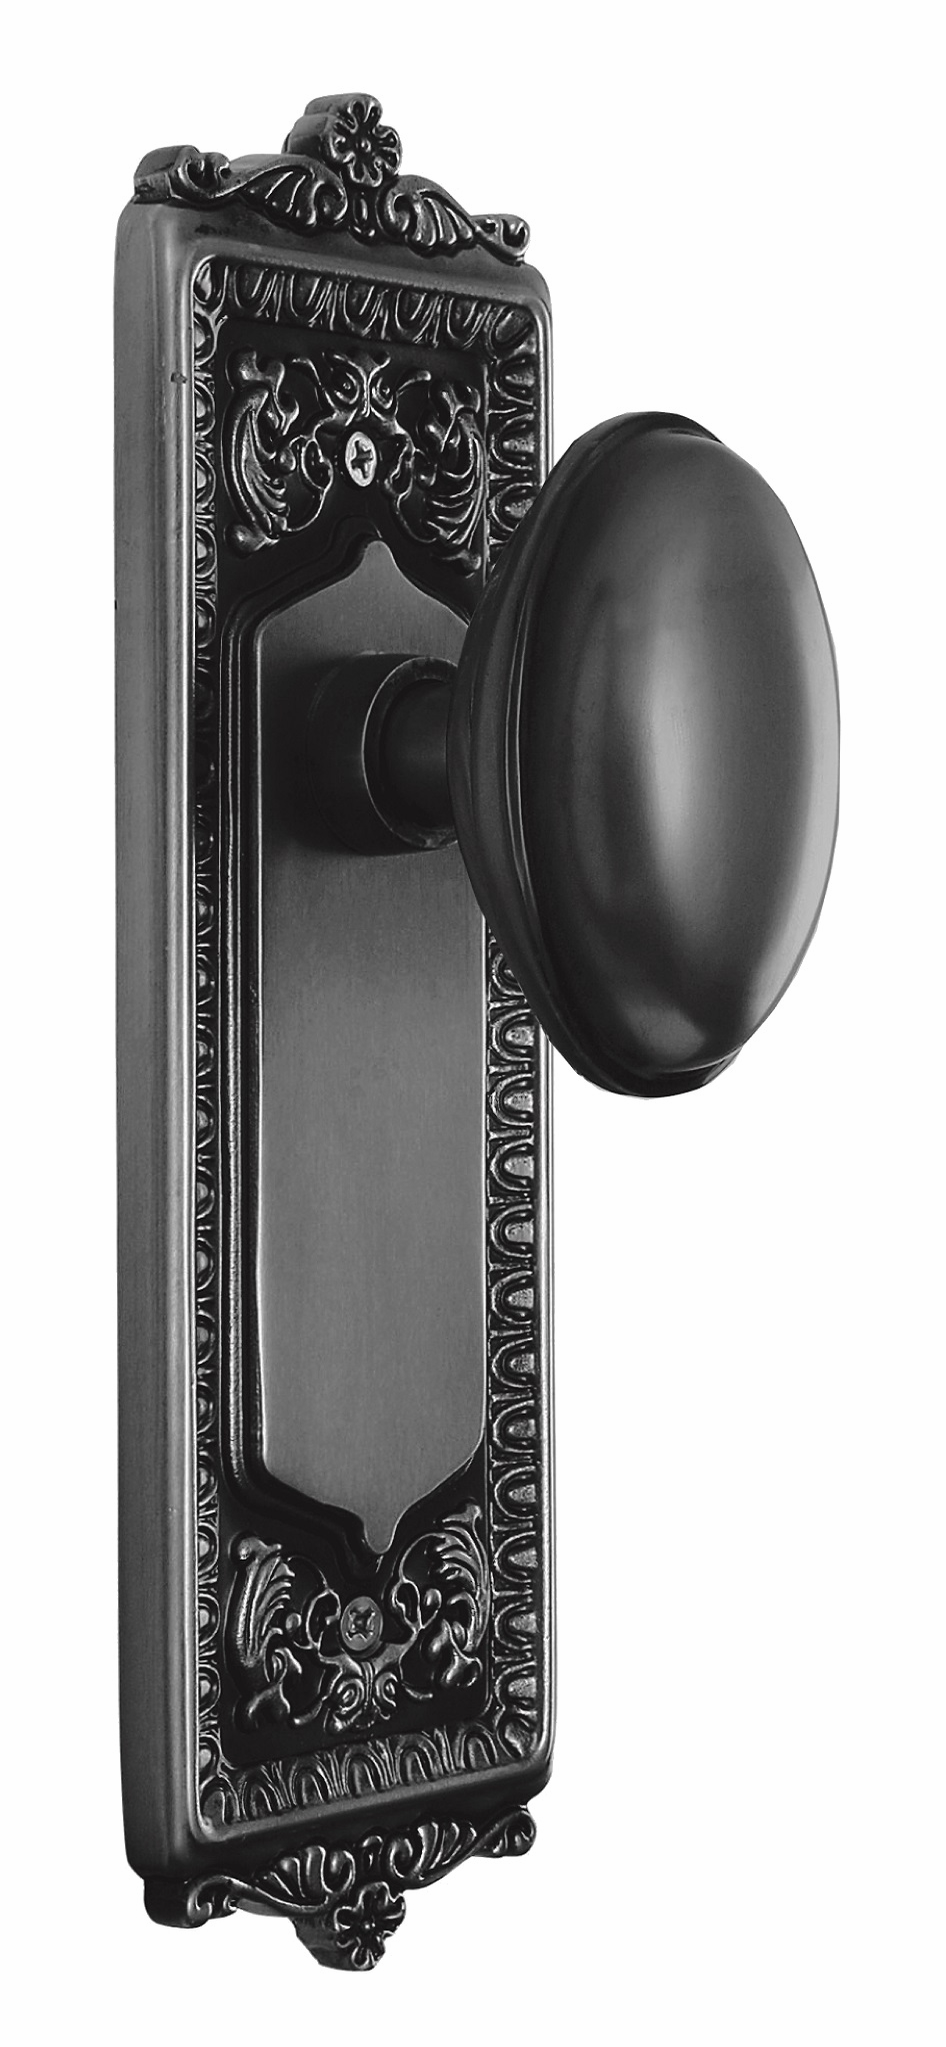 Egg and Dart Backplate and Homestead Knob, Privacy, Oil Rubbed Bronze